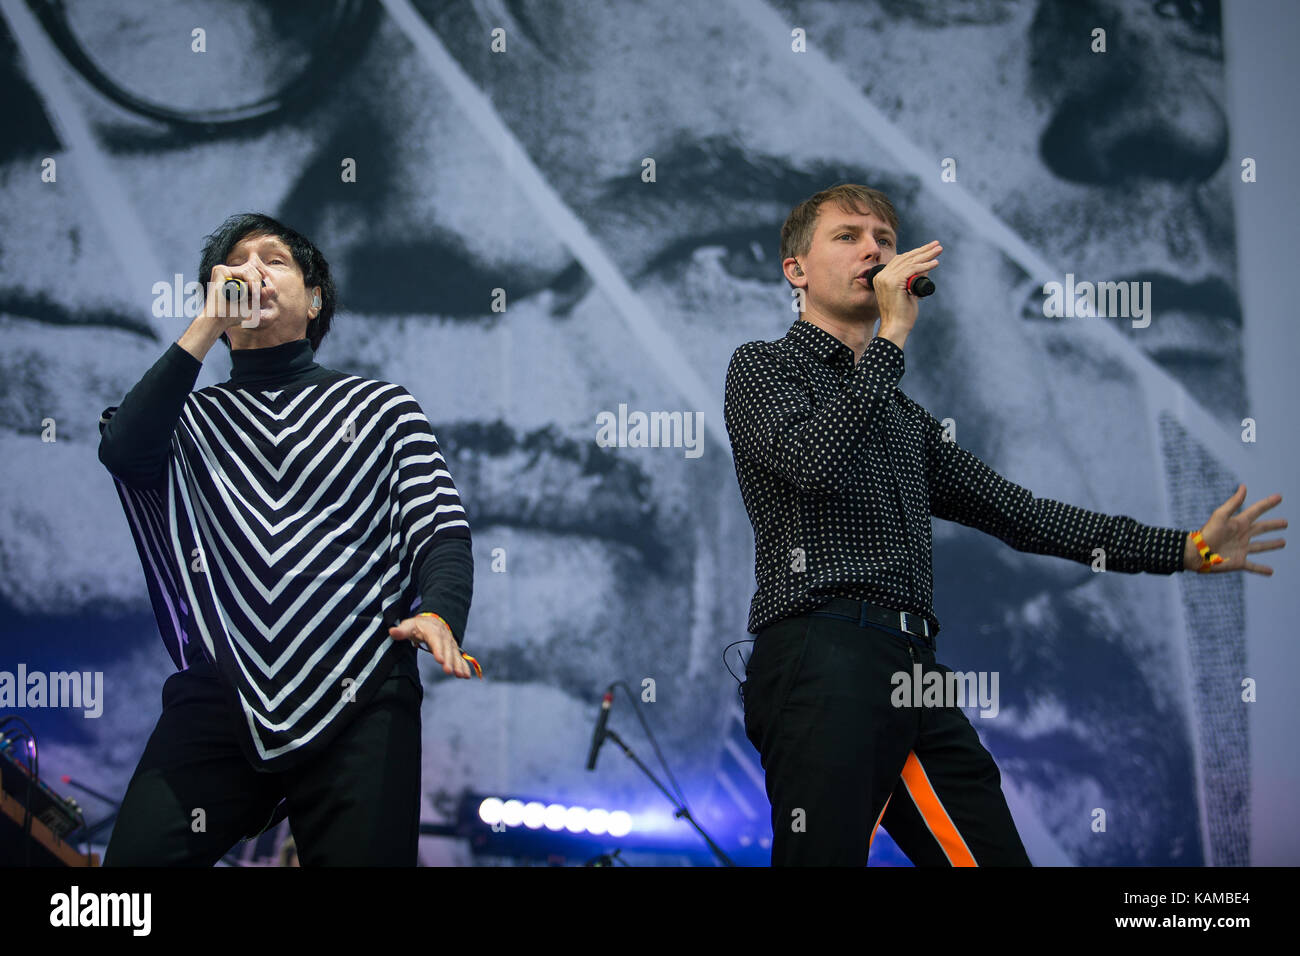 The American-Scottish super group FFS (Franz Ferdinand and Sparks) consists of members of the two bands Franz Ferdinand - Stock Image